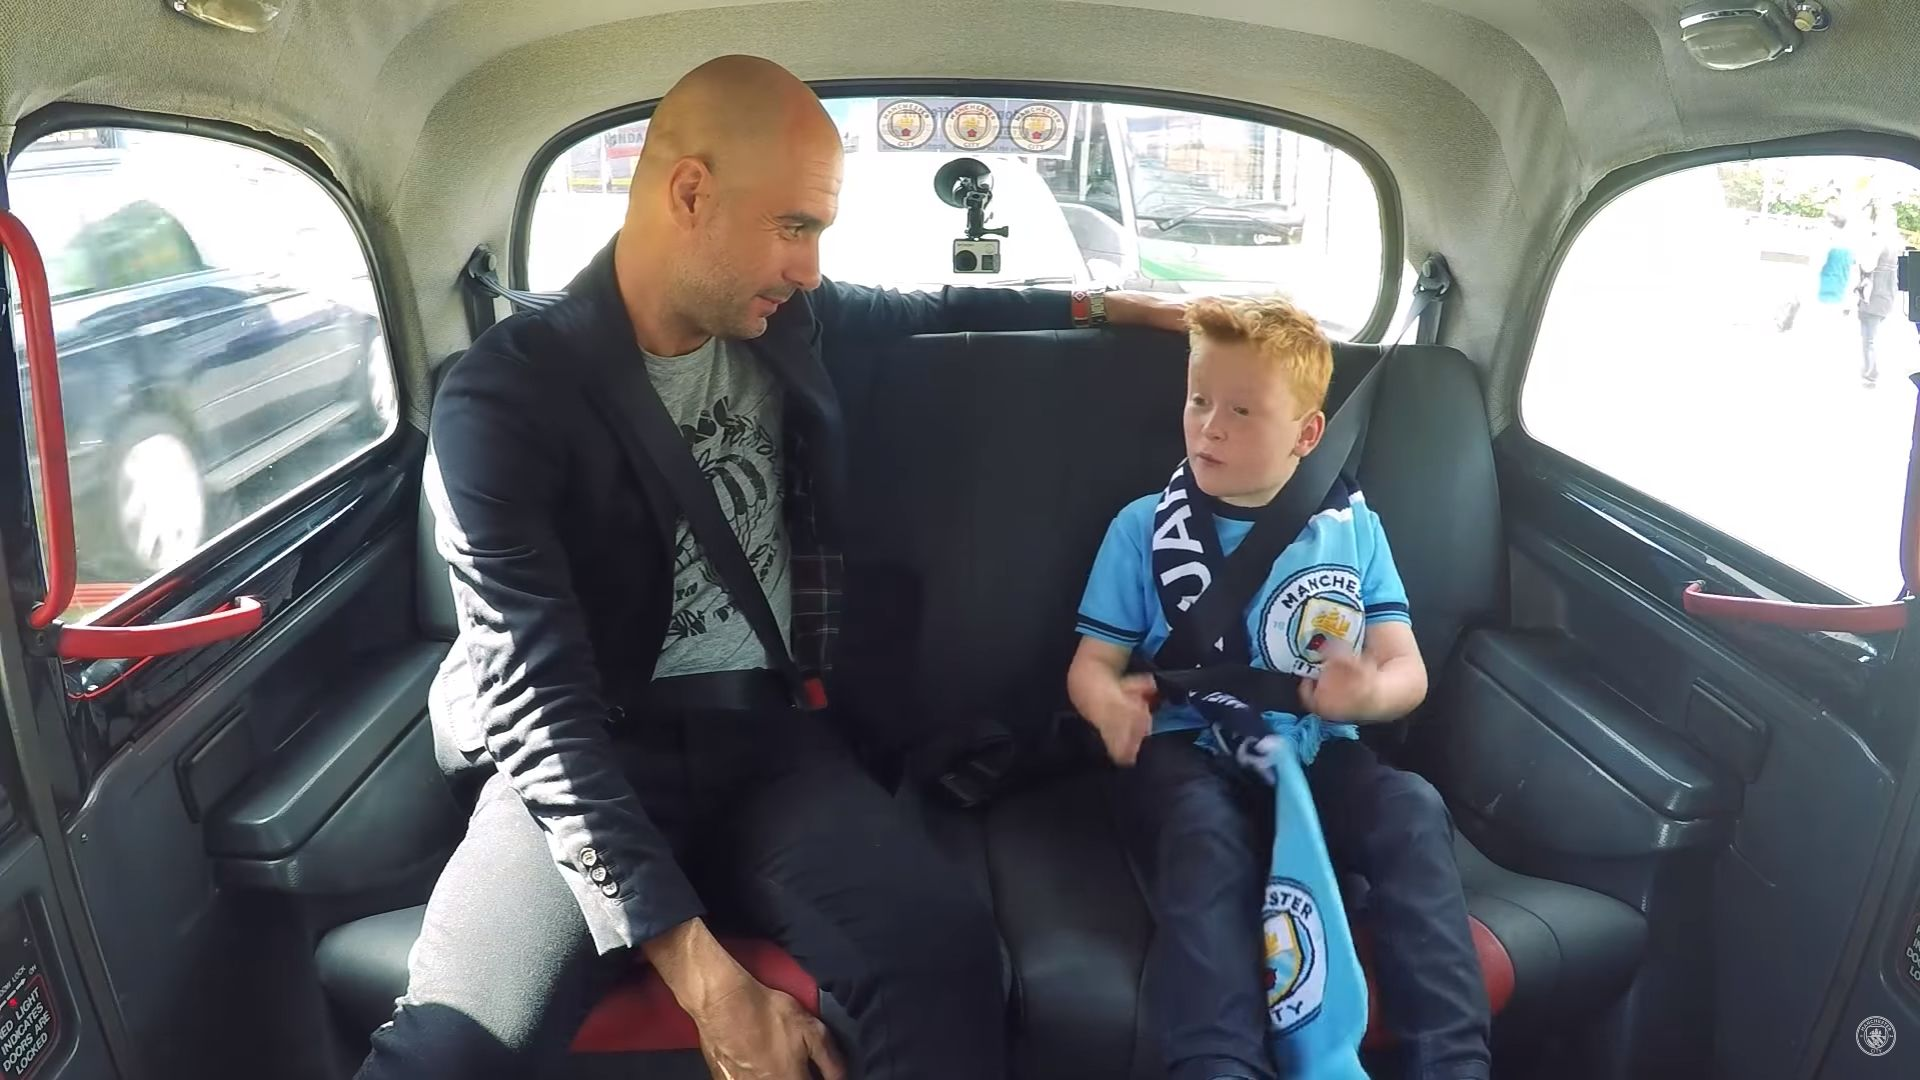 Video | Guardiola sorprendió en un taxi a pequeño fan del City